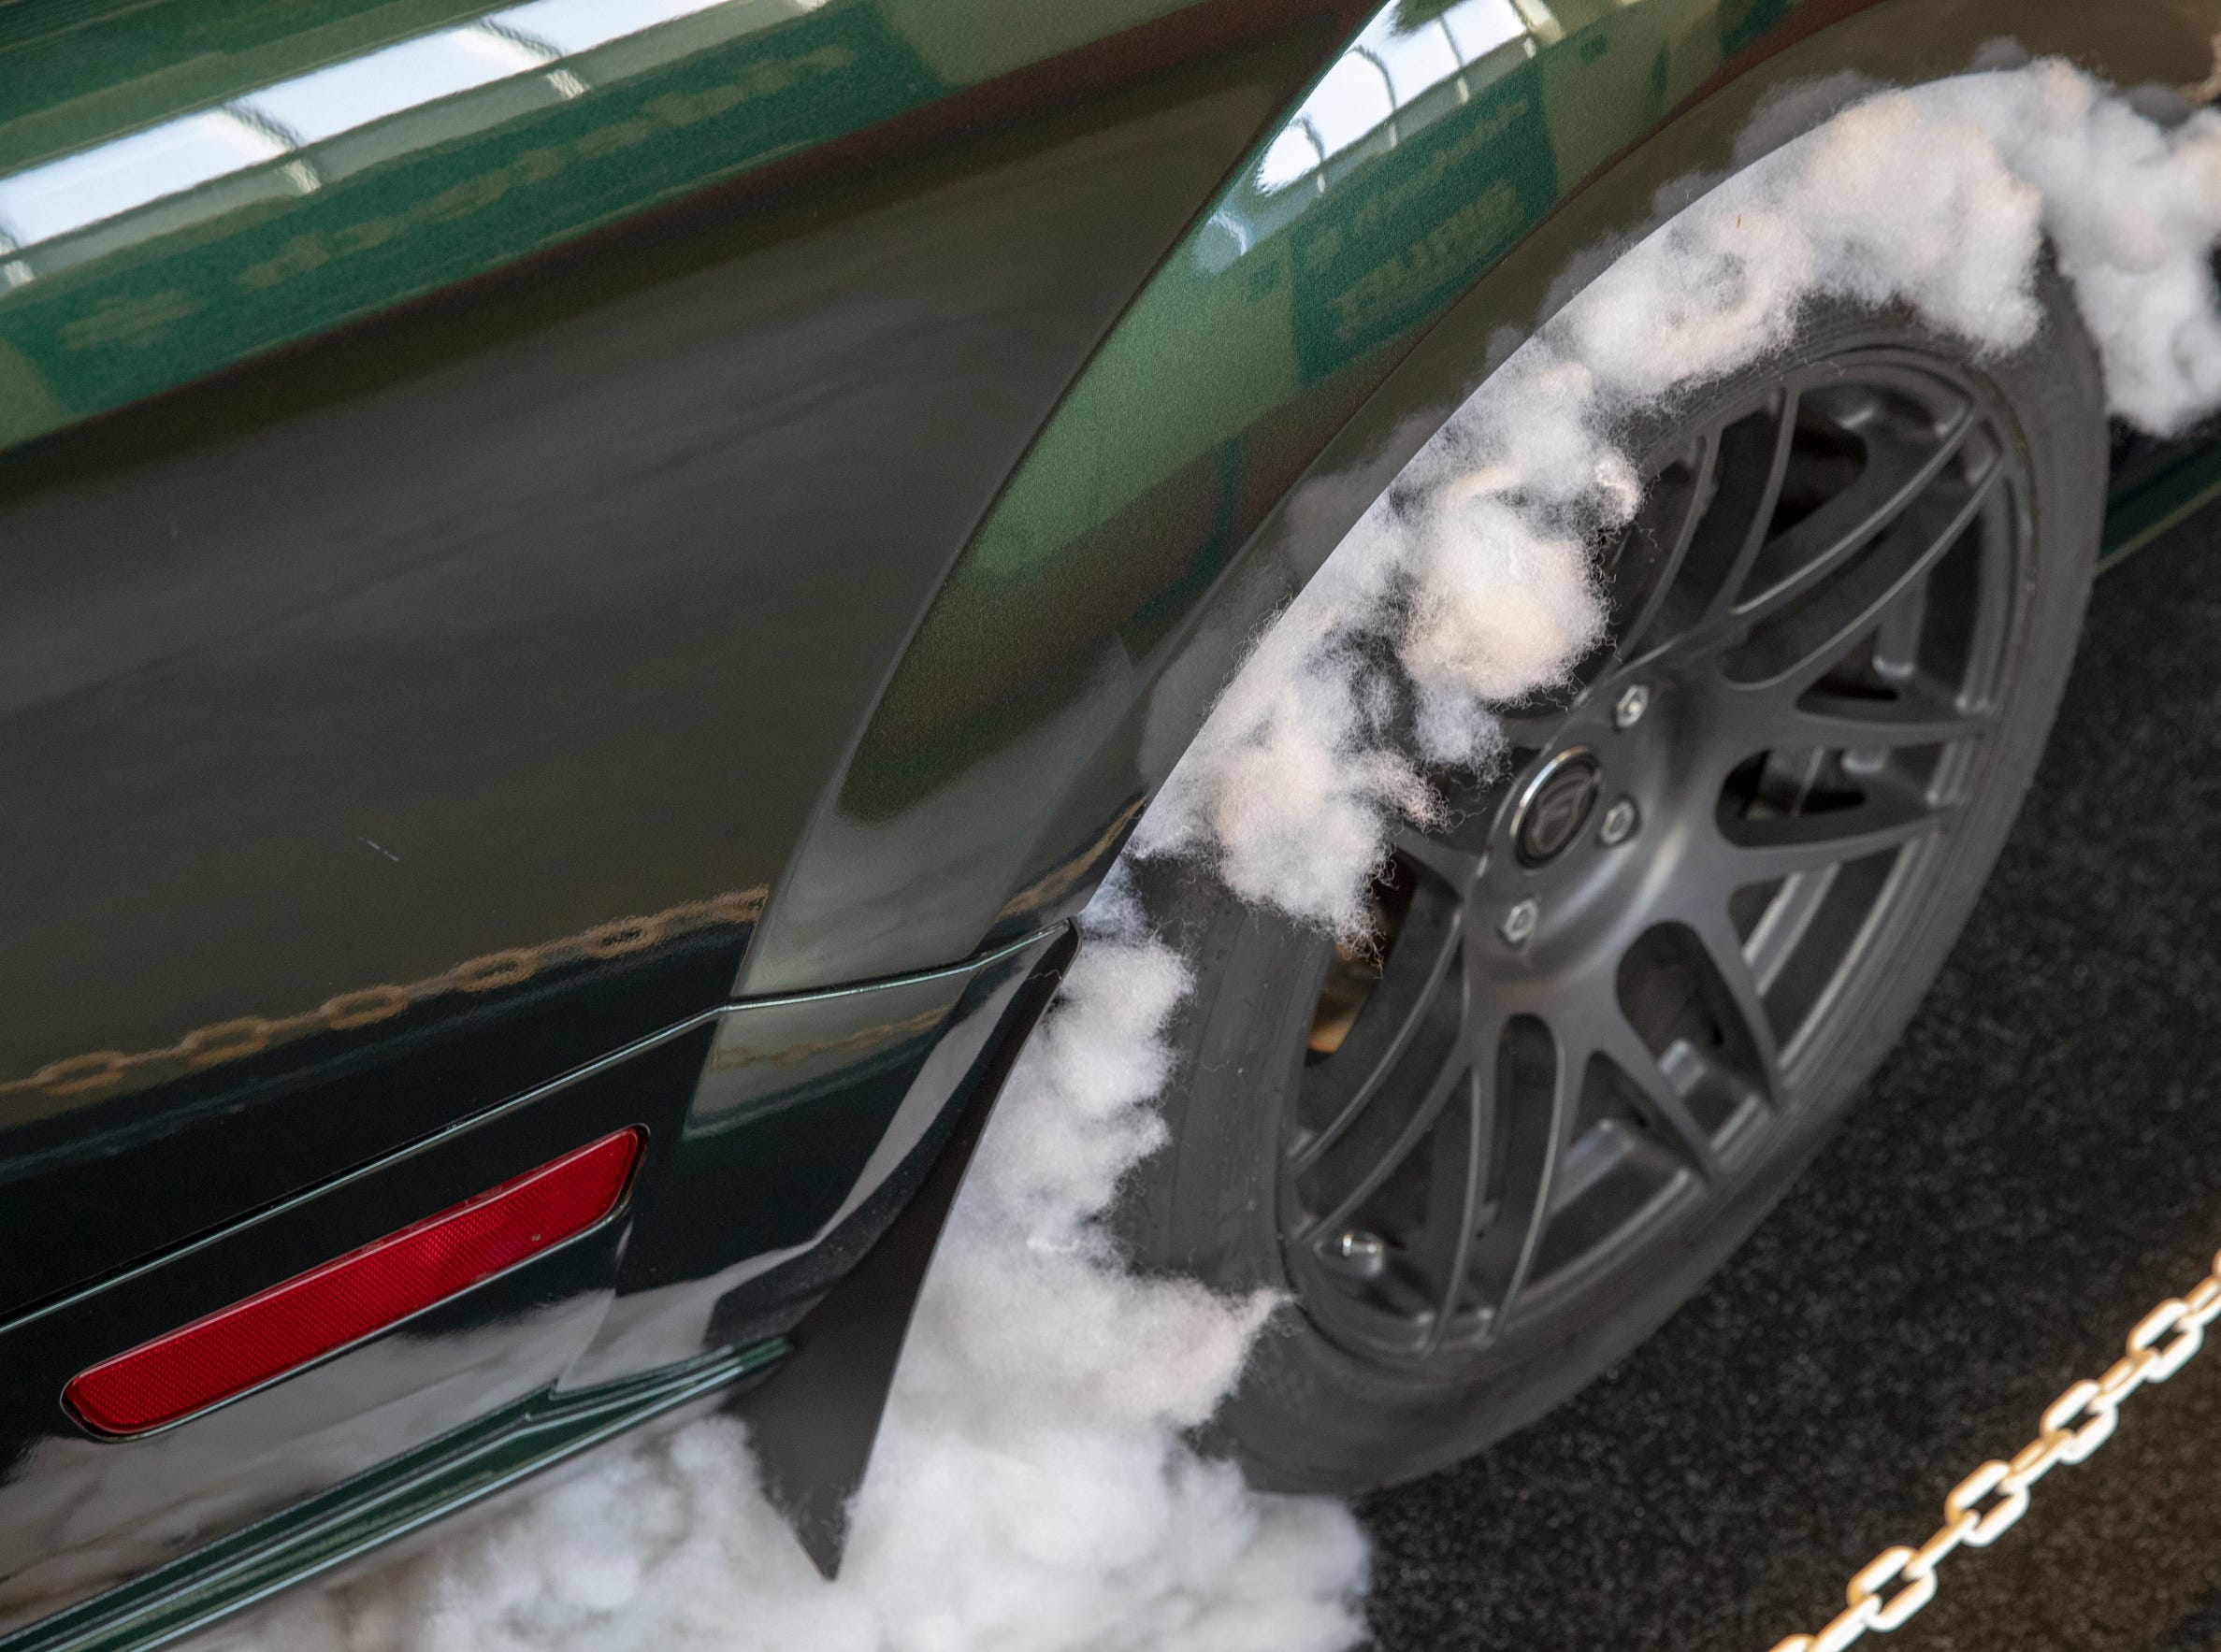 Bunting in the wheel wheels of a car to depict a smoking and screeching tire, at World of Wheels at the Indiana State Fairgrounds, Indianapolis, Friday, Feb. 8, 2019. The event runs through the weekend and features four big rooms of stock and heavily customized cars.